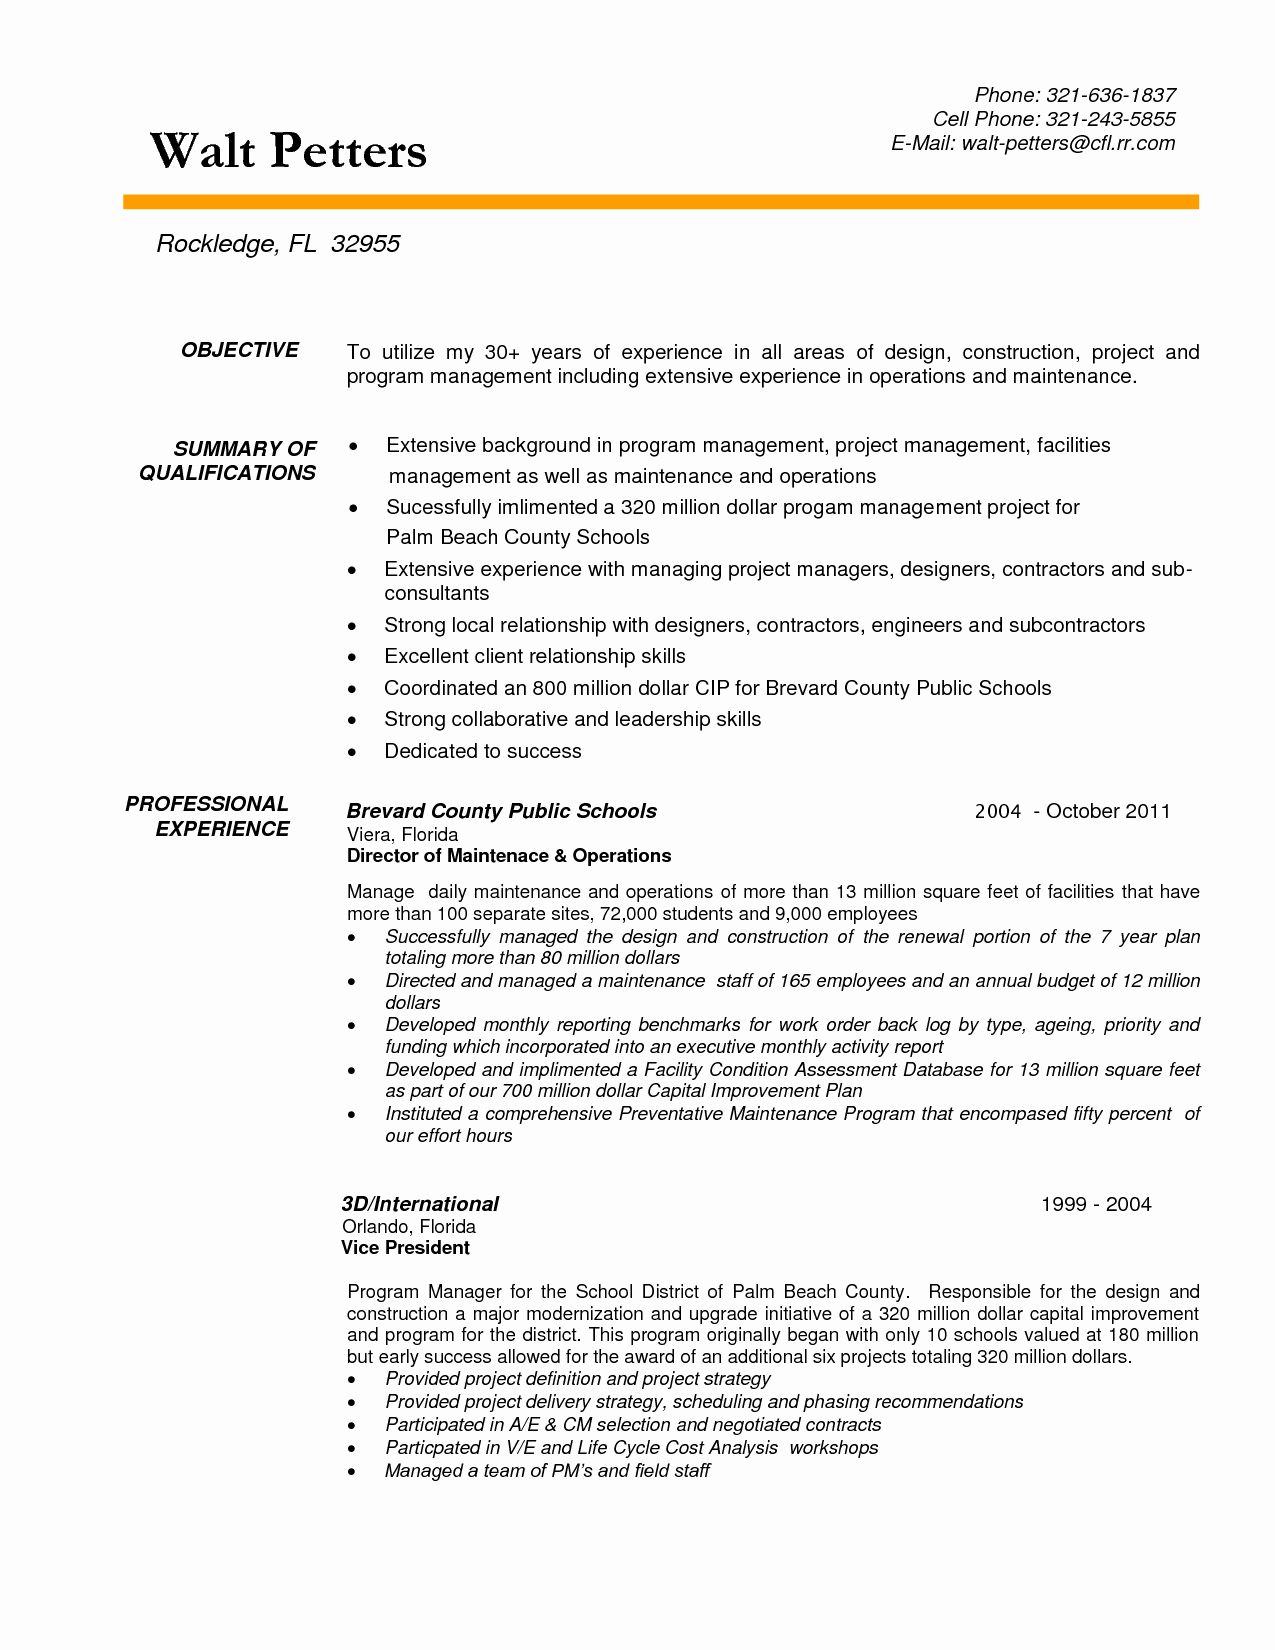 Construction Project Manager Resume Template Fresh